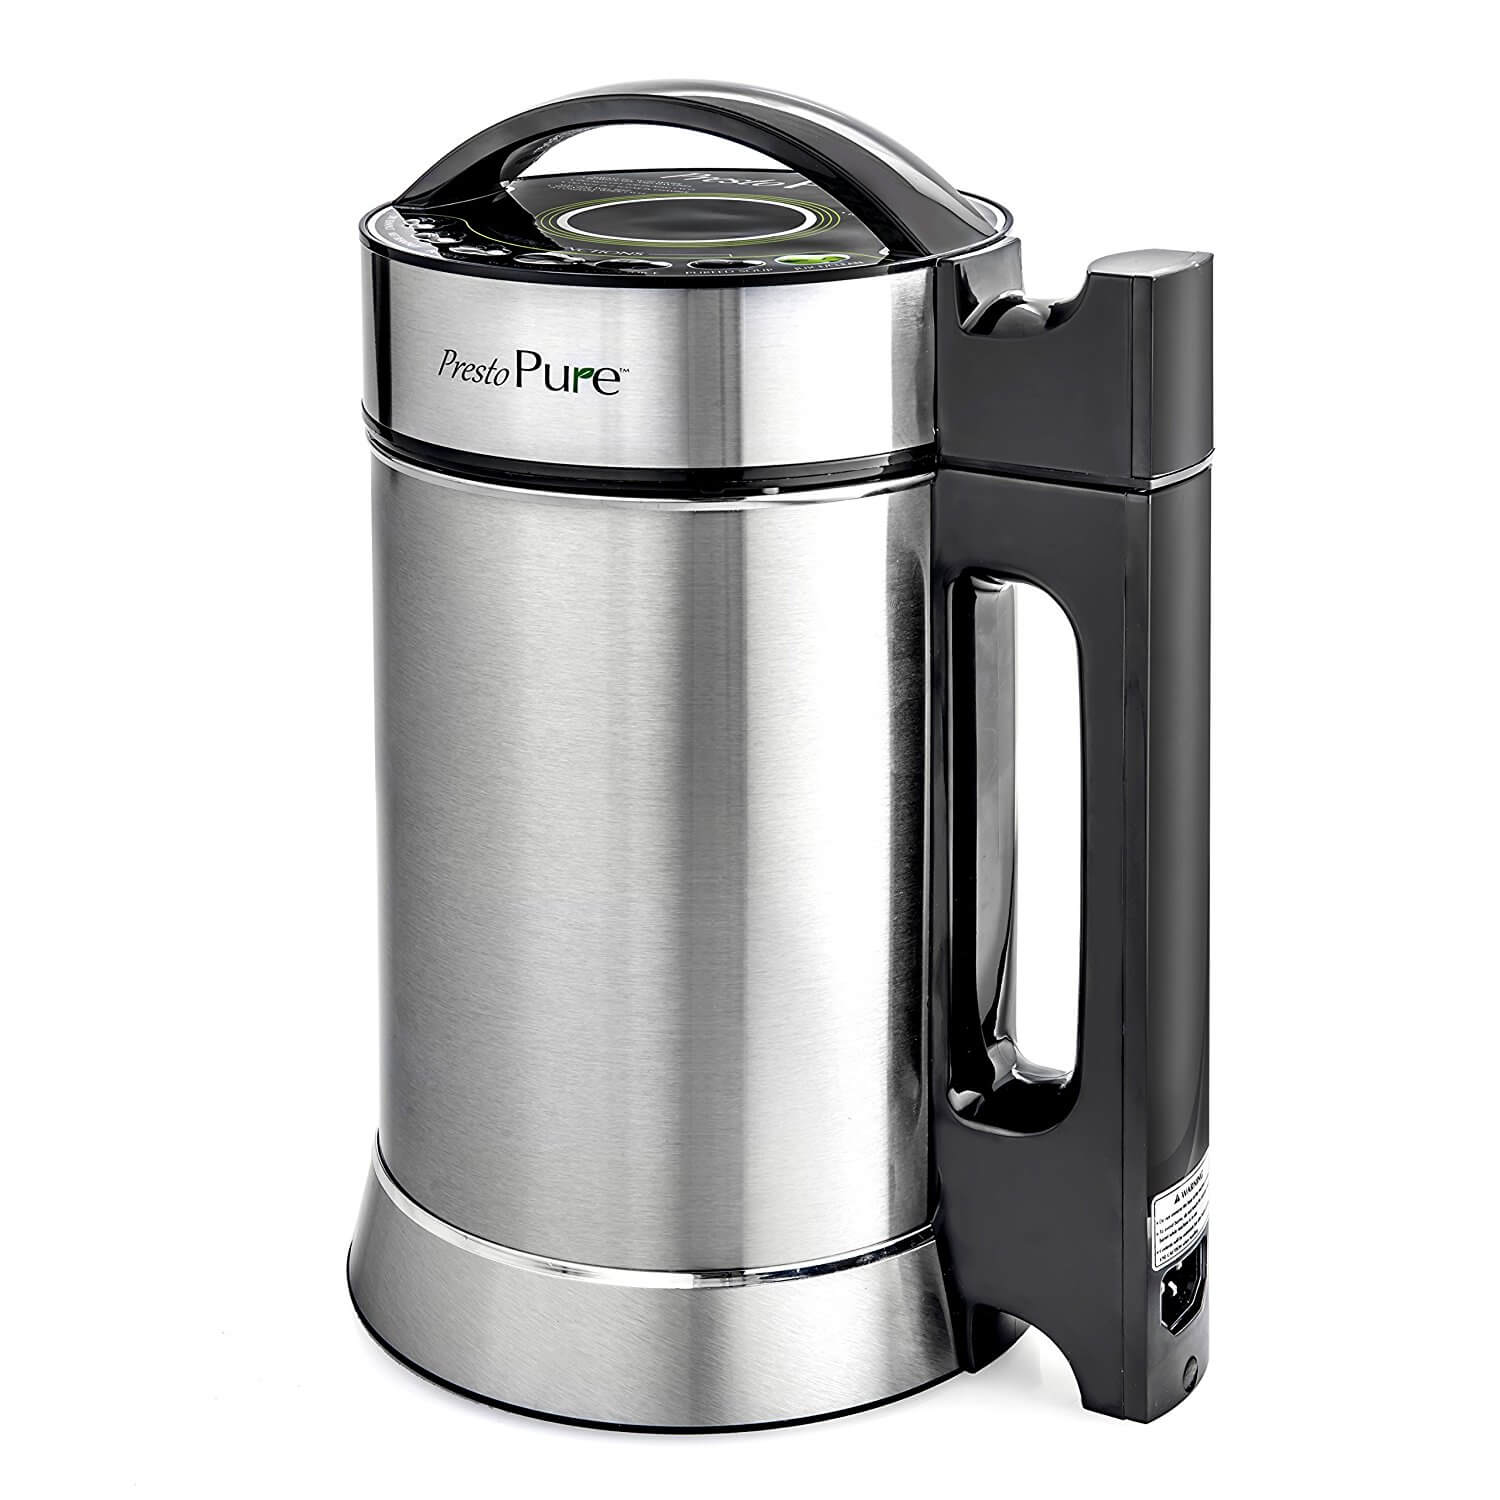 Presto Pure IAE15 - 1.9 Liter Automatic Hot Soy Milk (Almond, Rice, Quinoa Milk) Soup, Porridge & Cold Juice Maker - 2 Layer Stainless Steel